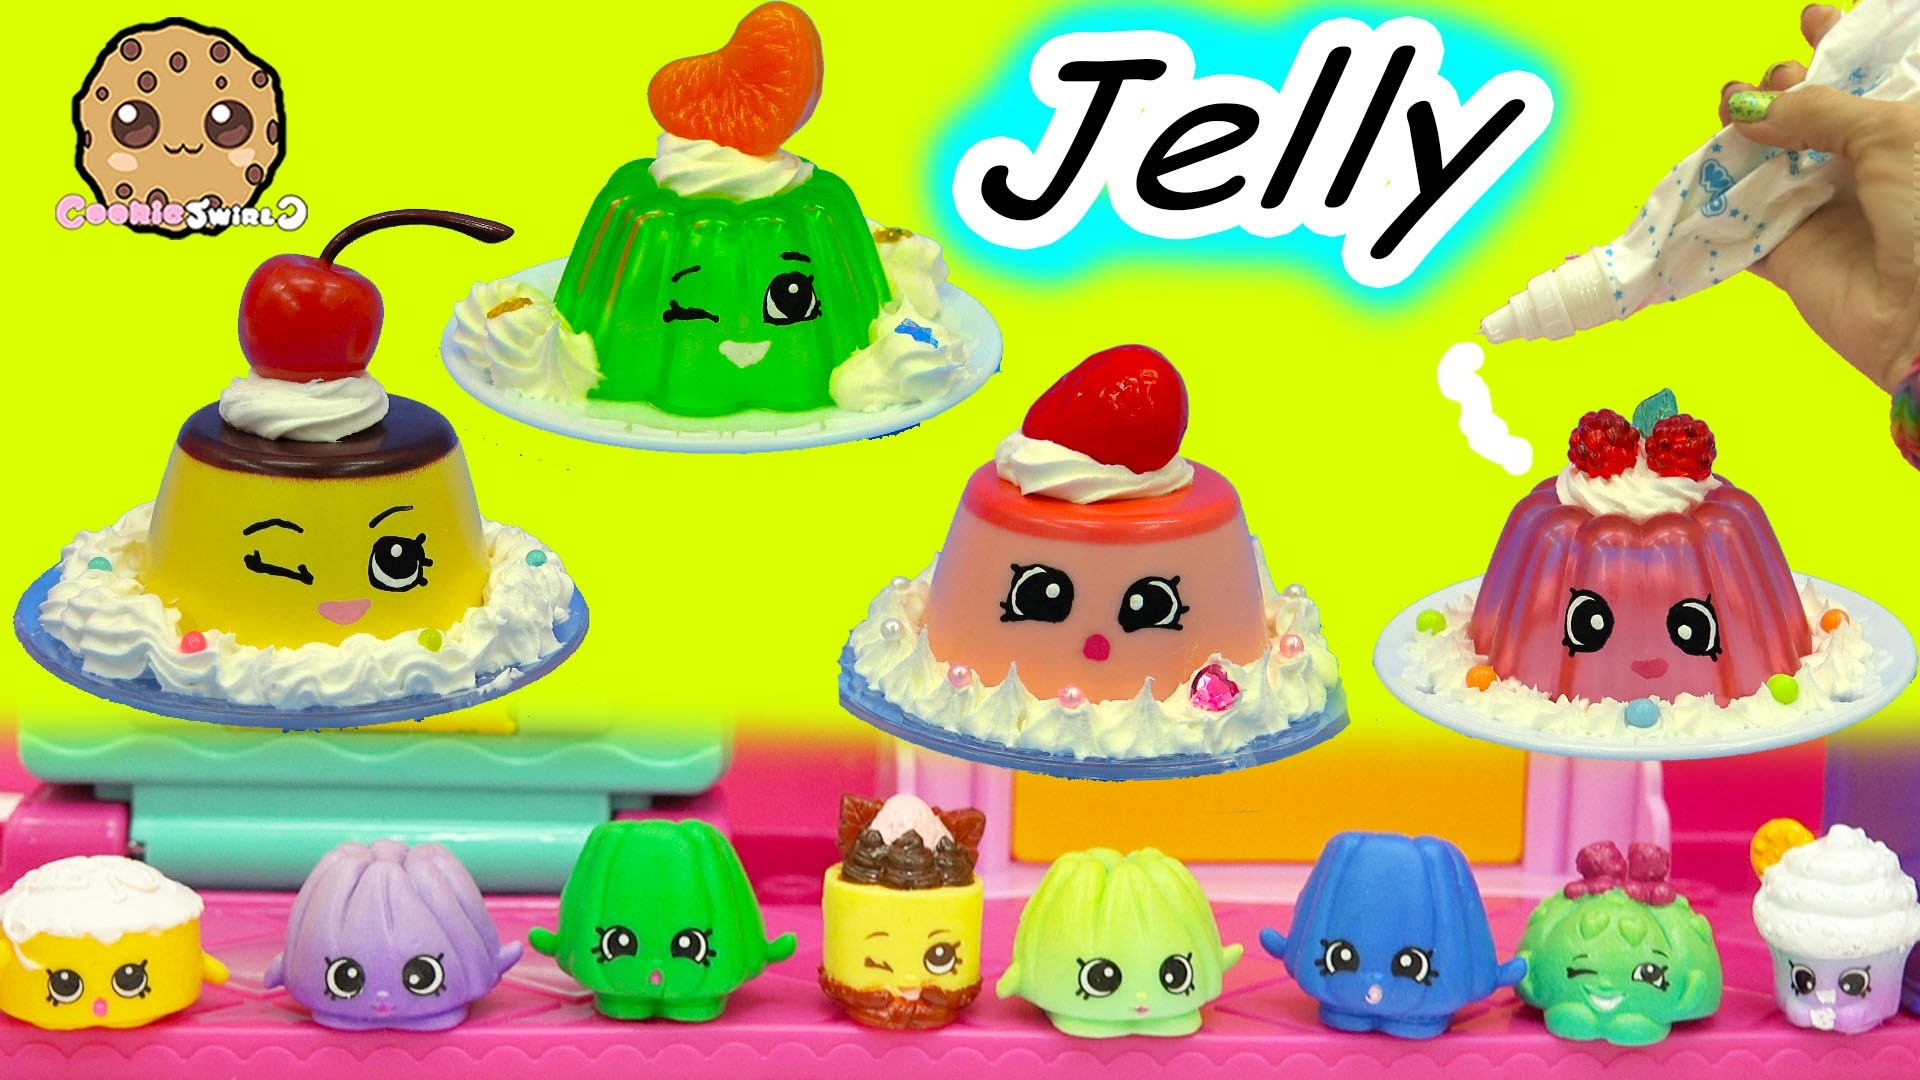 Whipple Cream Jelly Pudding Shopkins Season Inspired Easy Do It Yourself  Paint & Craft Video – YouTube